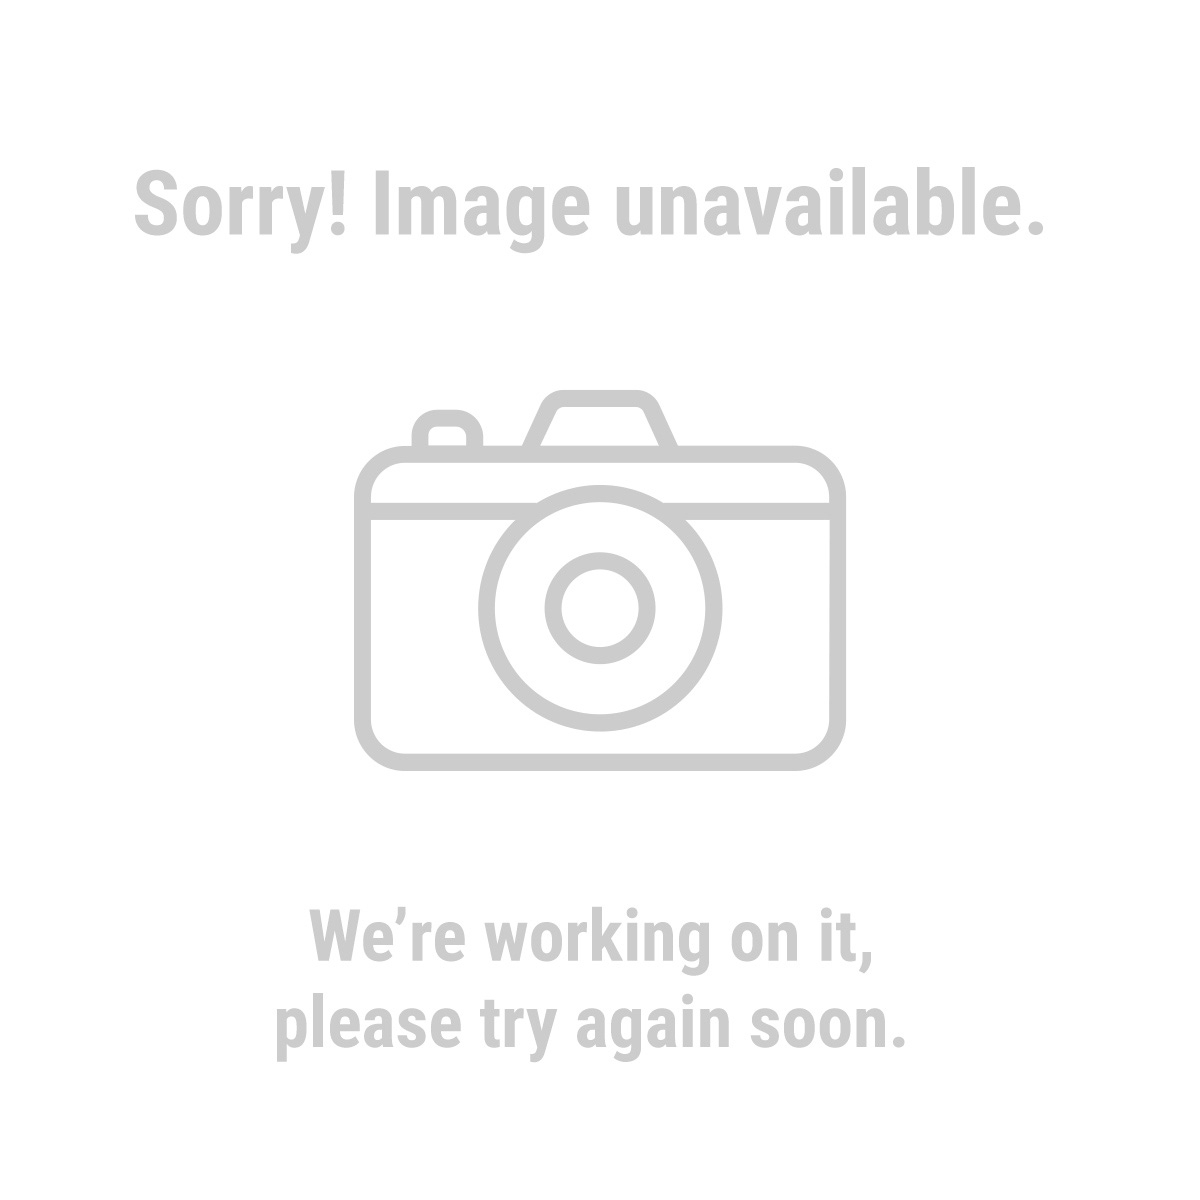 Pacific Hydrostar 68284 50 ft. Commercial Power-Feed Drain Cleaner with GFCI